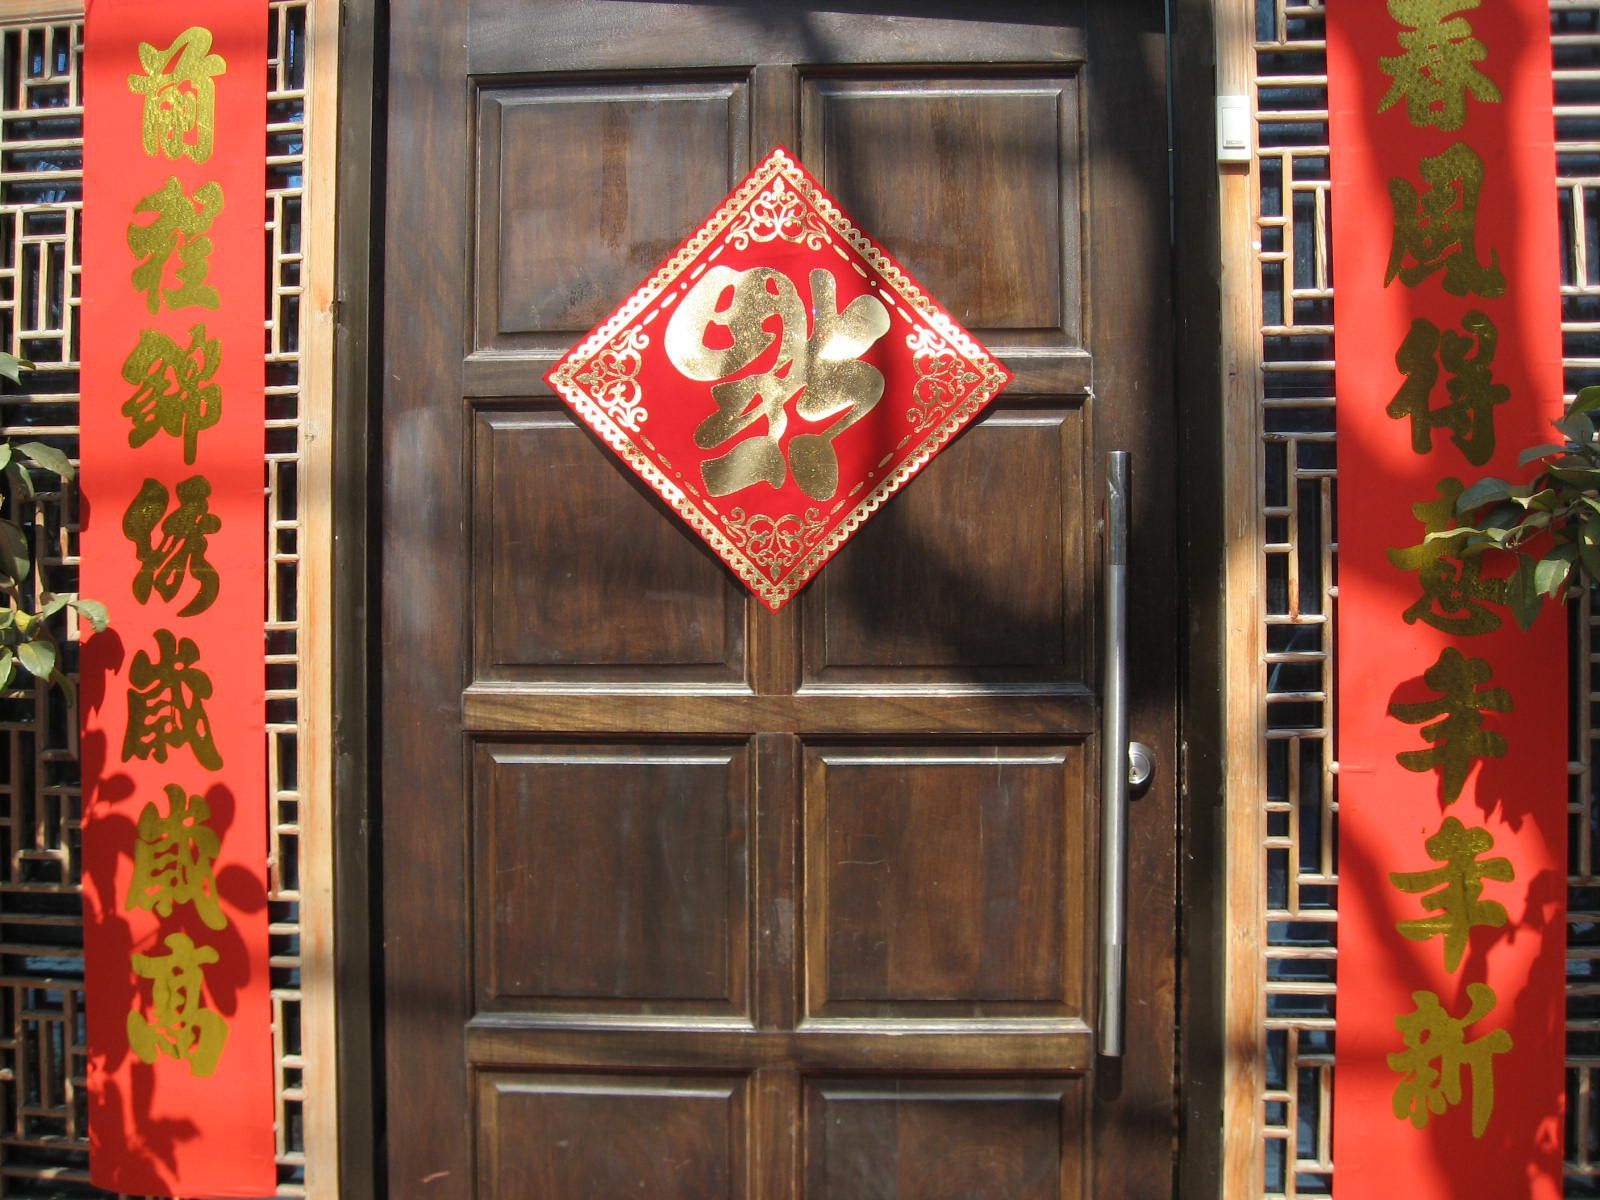 Chinese Characters and Decorations for Chinese New Year